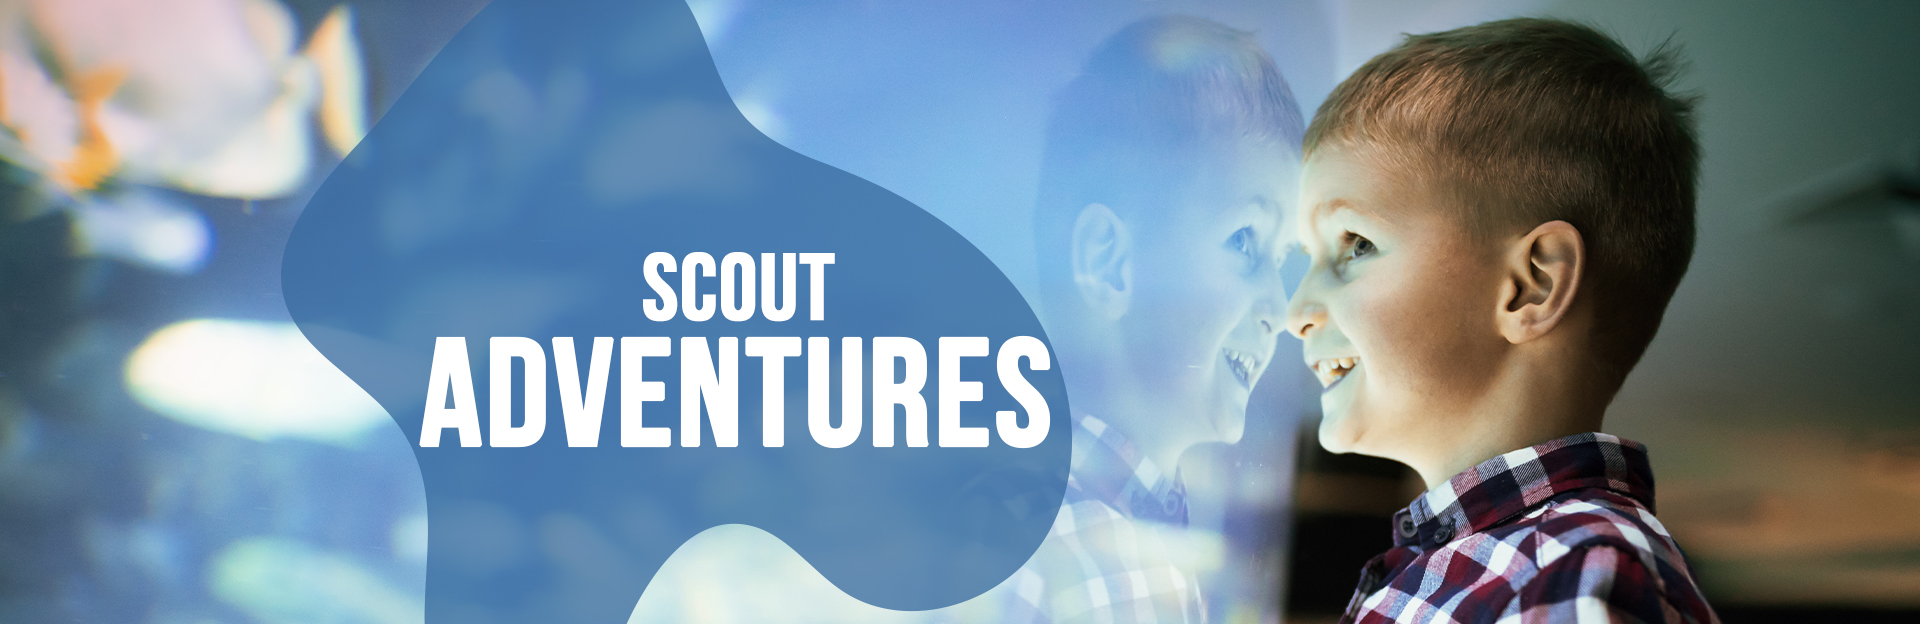 Header Image for Scouts page